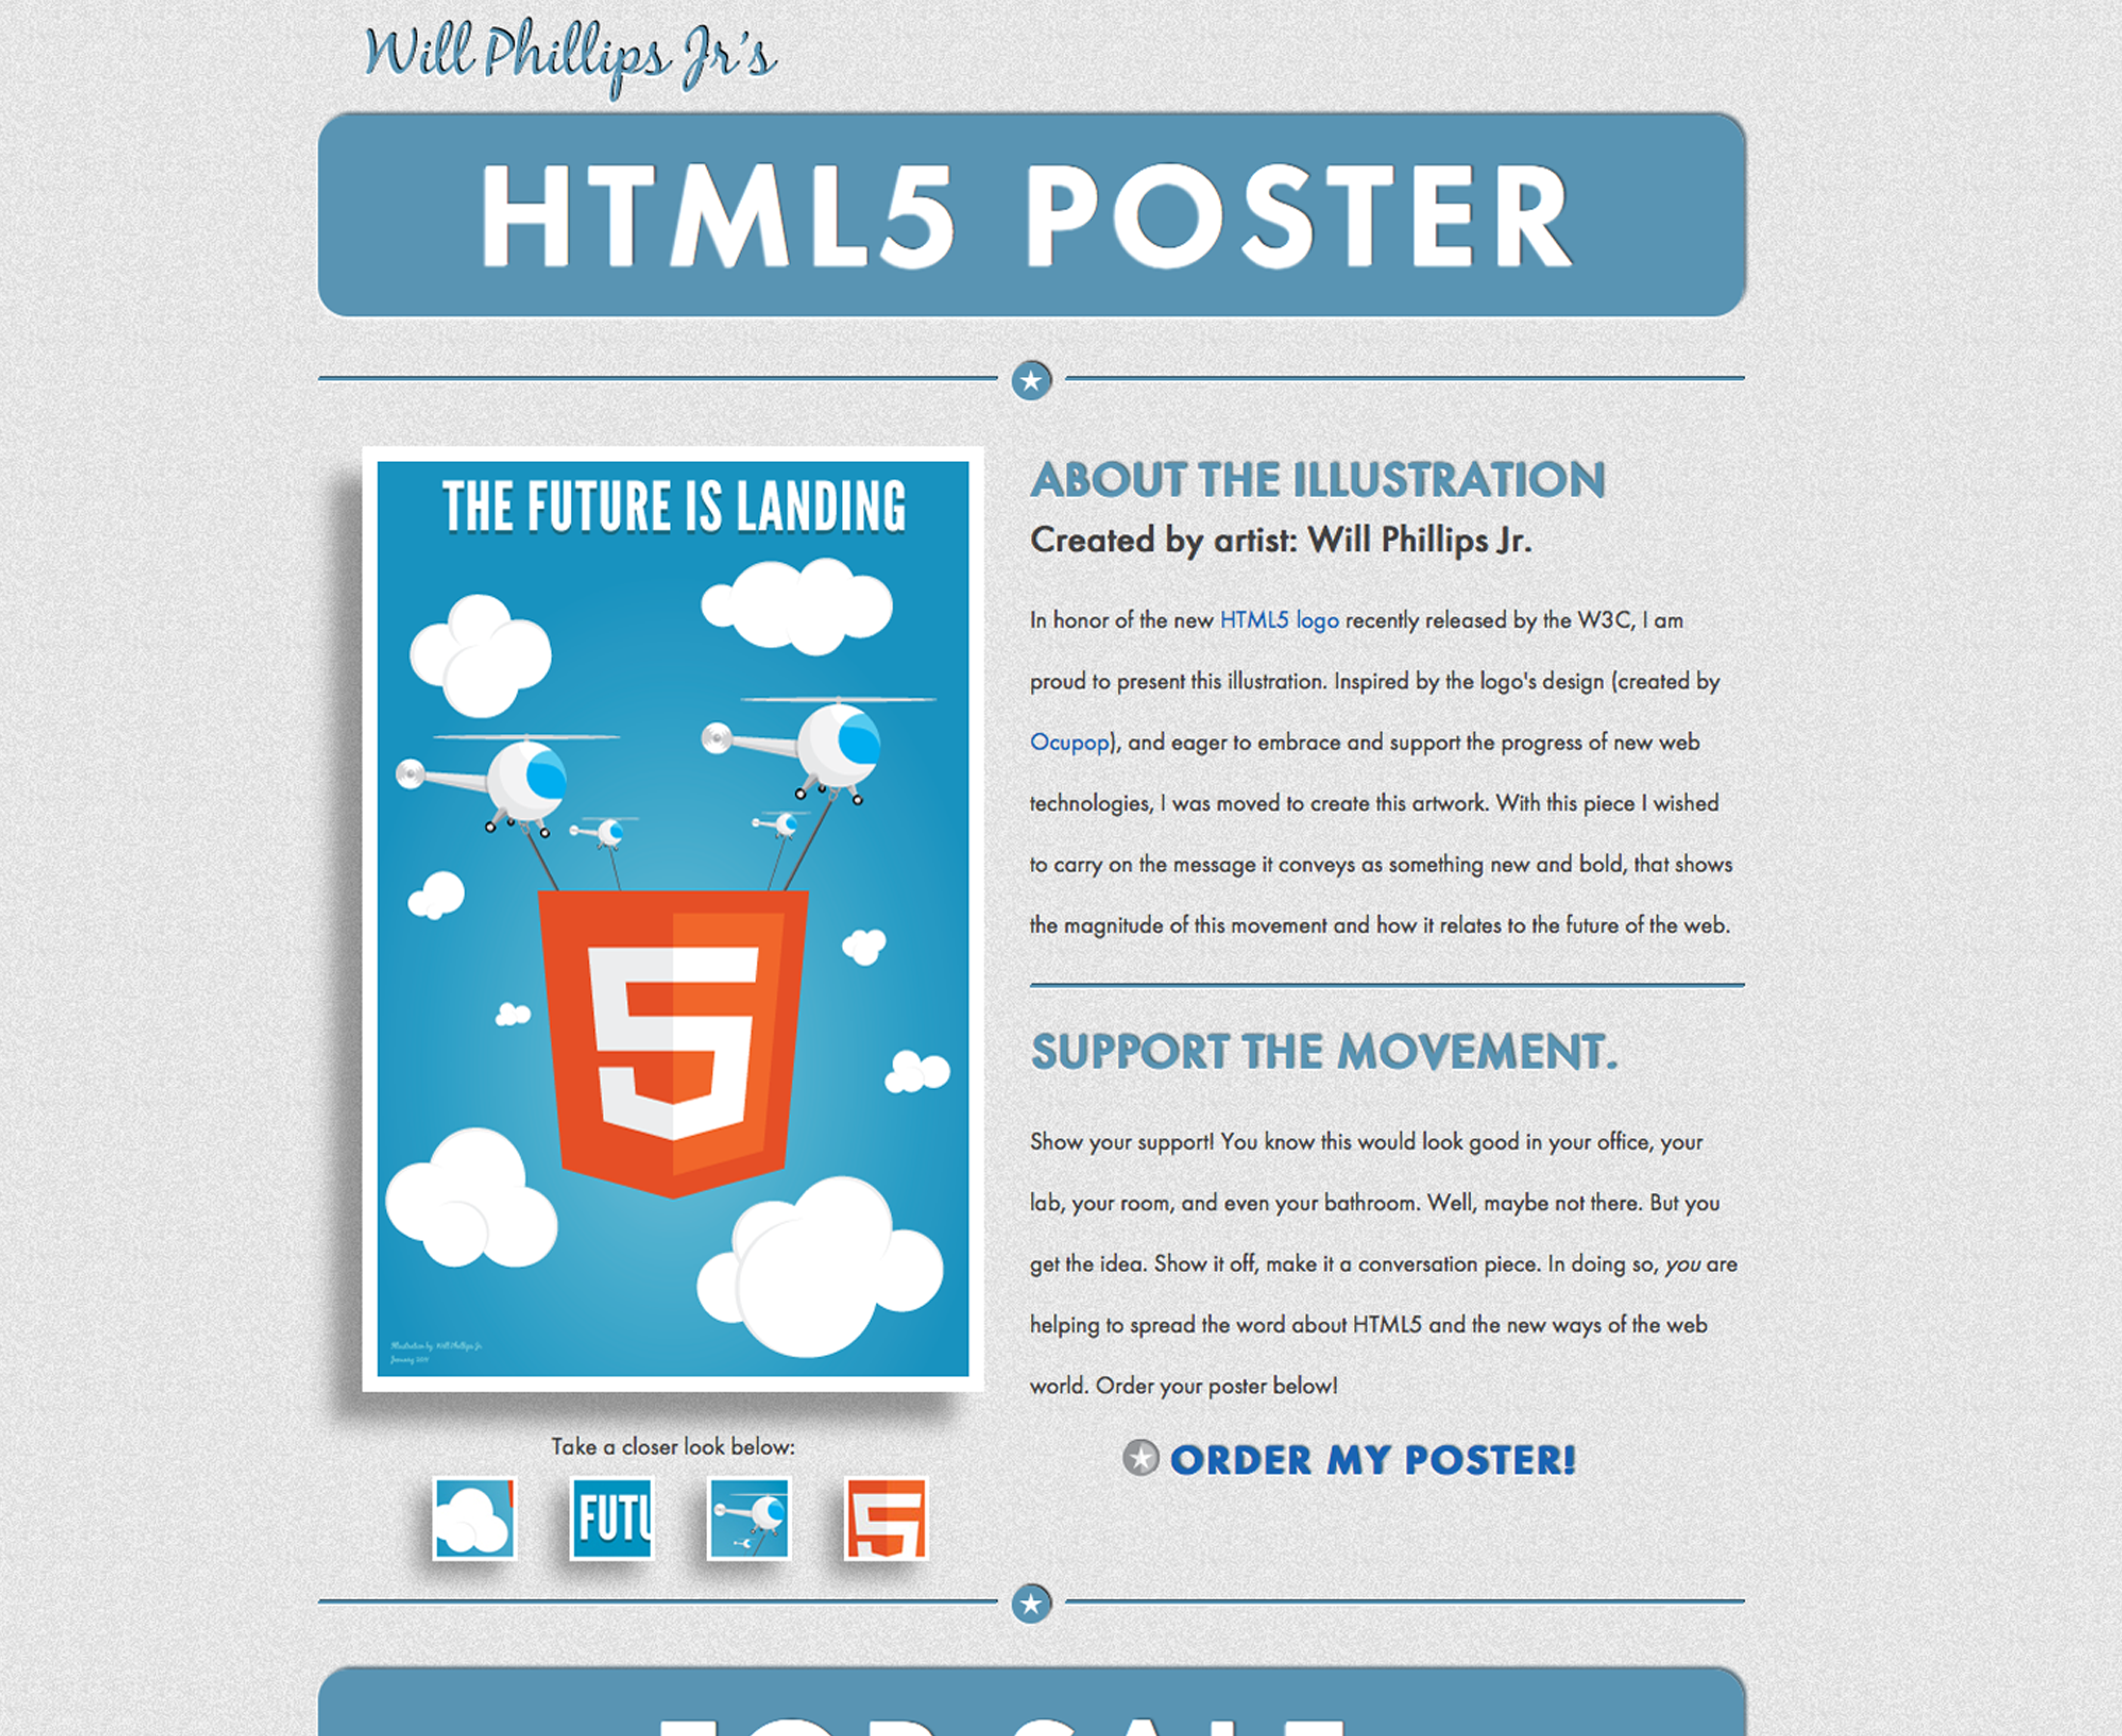 HTML5 Poster Web Page